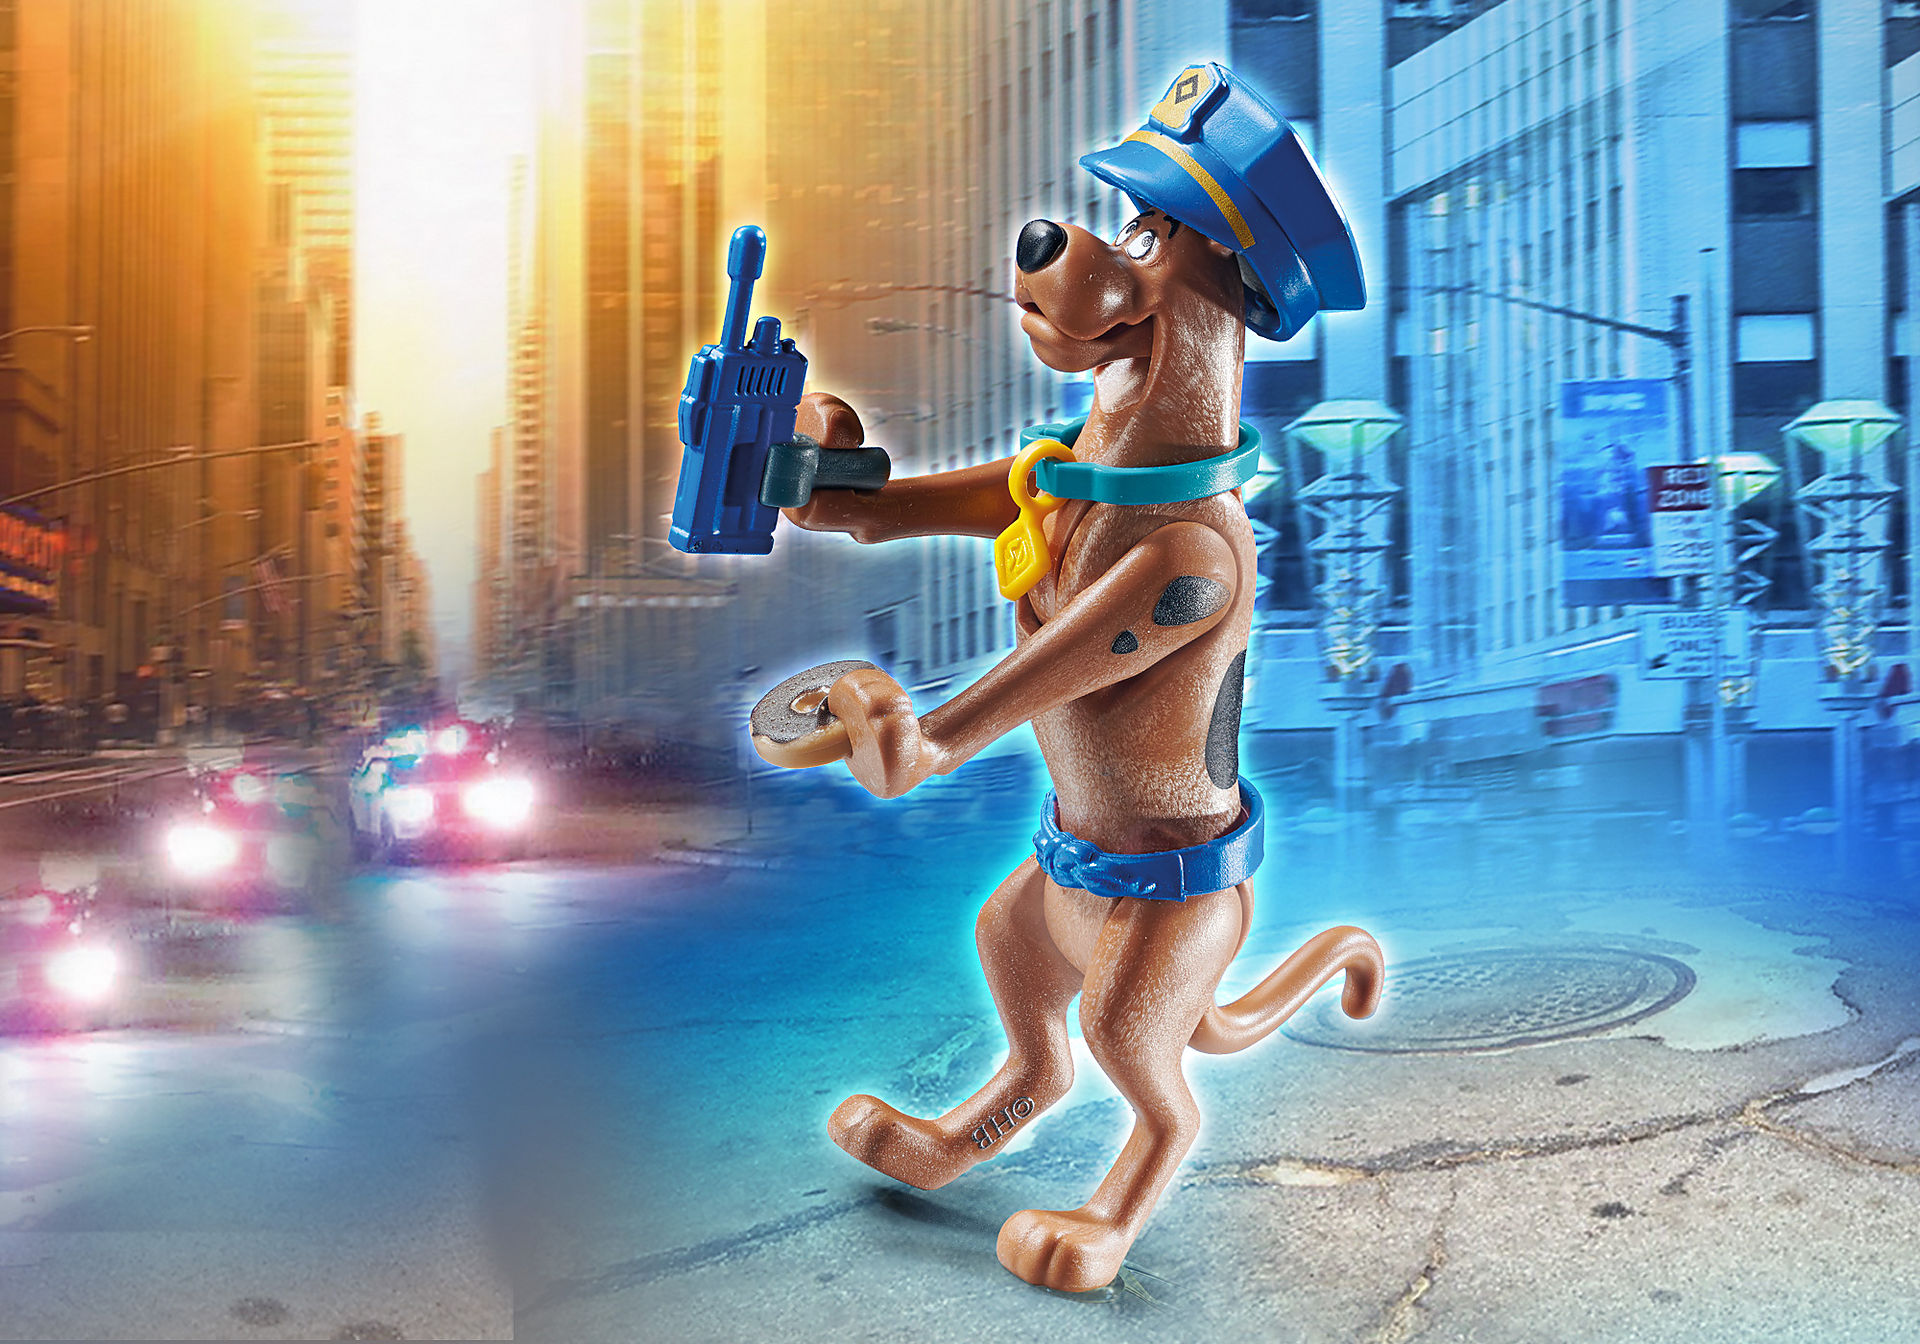 70714 SCOOBY-DOO! Collectible Police Figure zoom image1